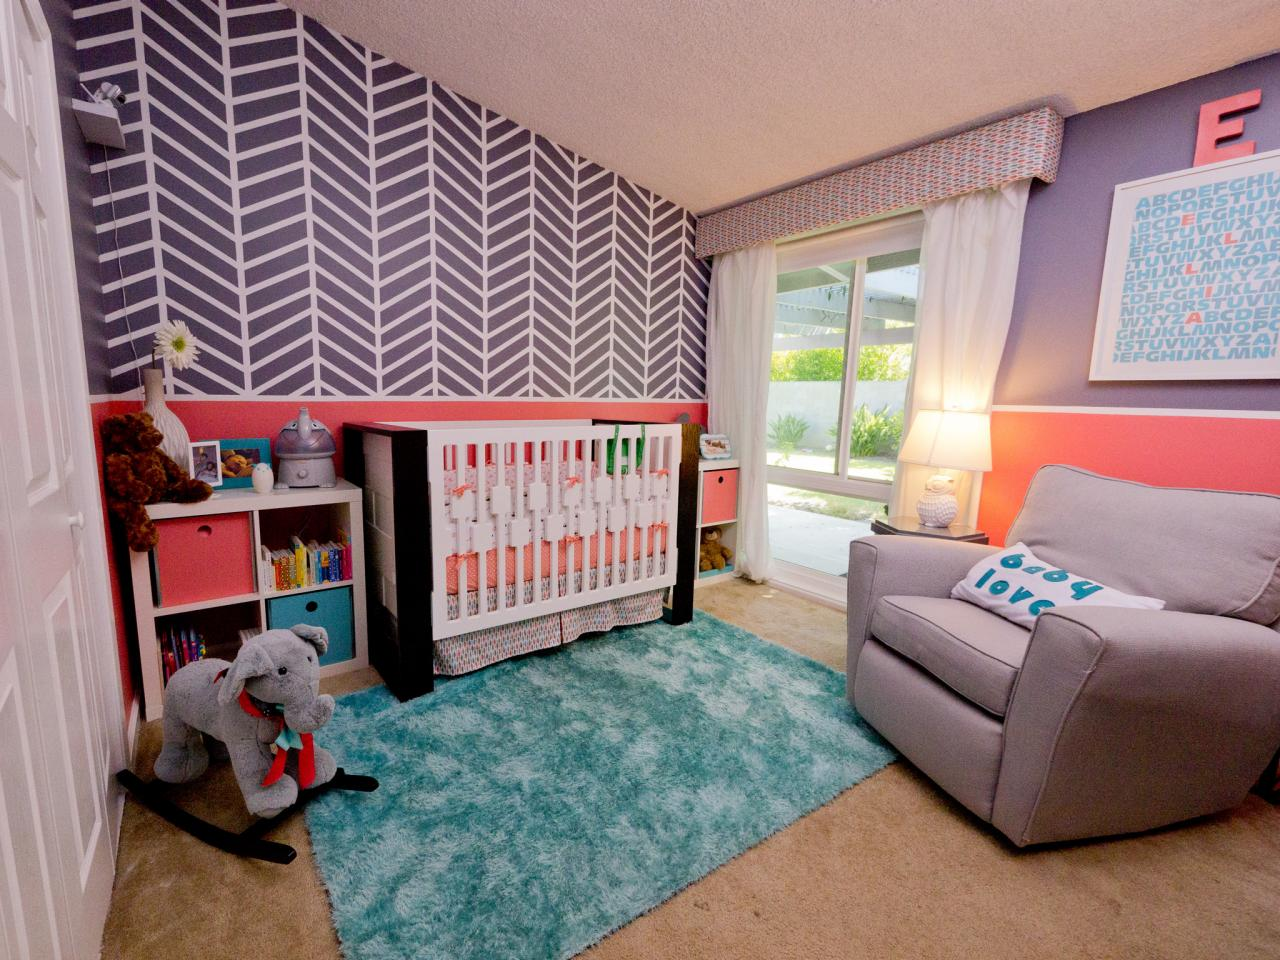 Nursery And Baby Room Colors: Pictures, Options & Ideas | HGTV